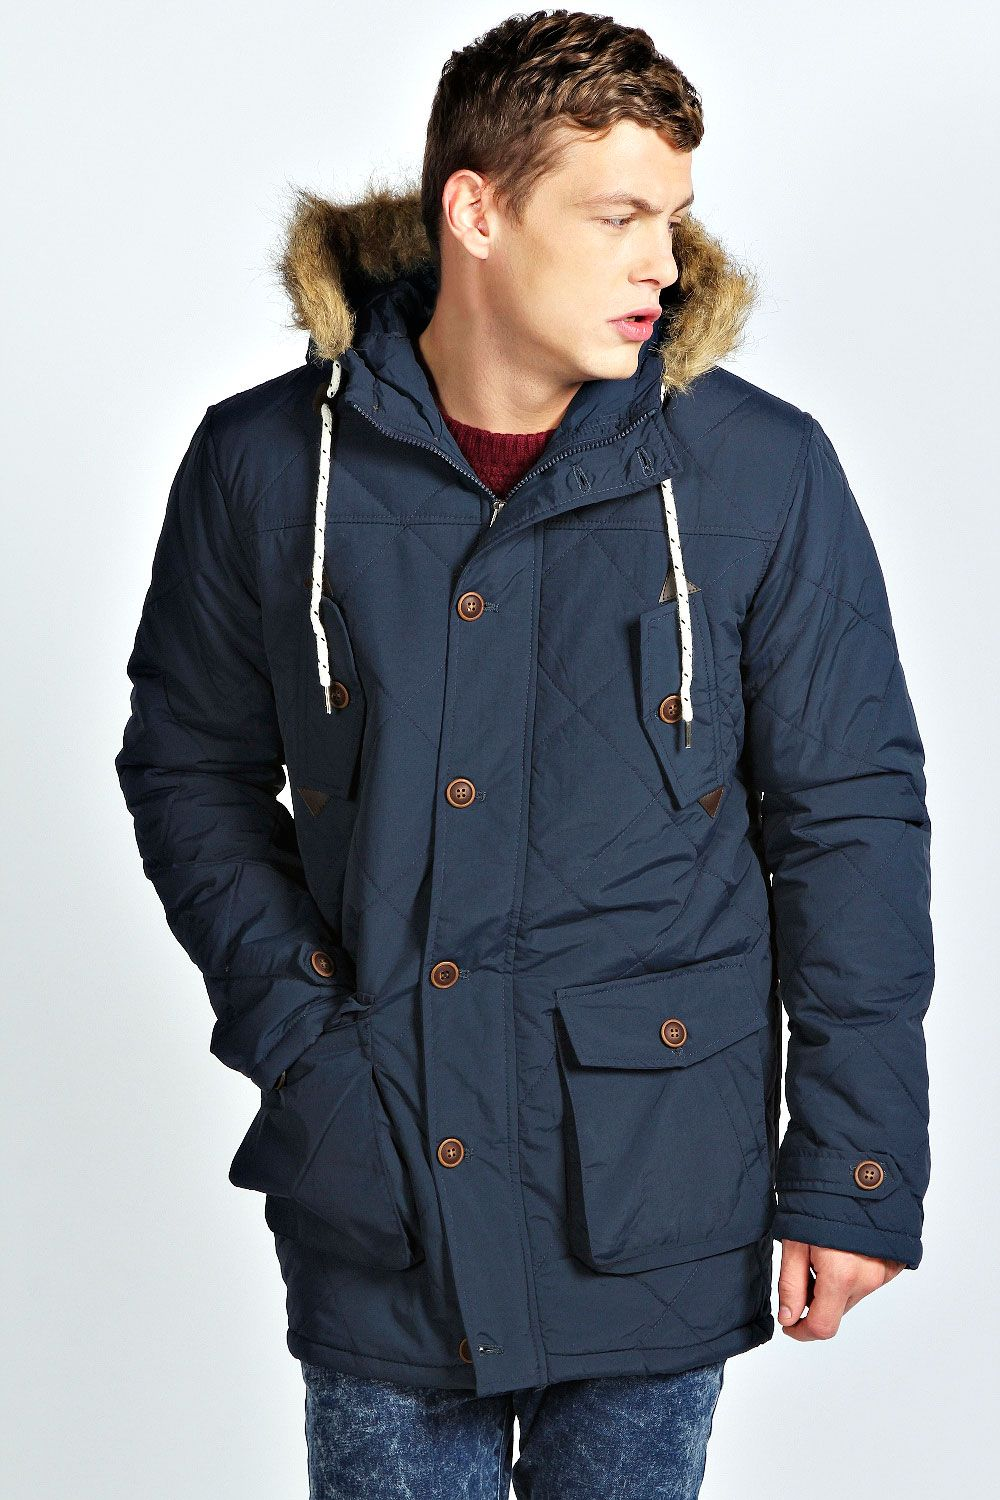 Navy Parka Jacket Mens | Jackets Review